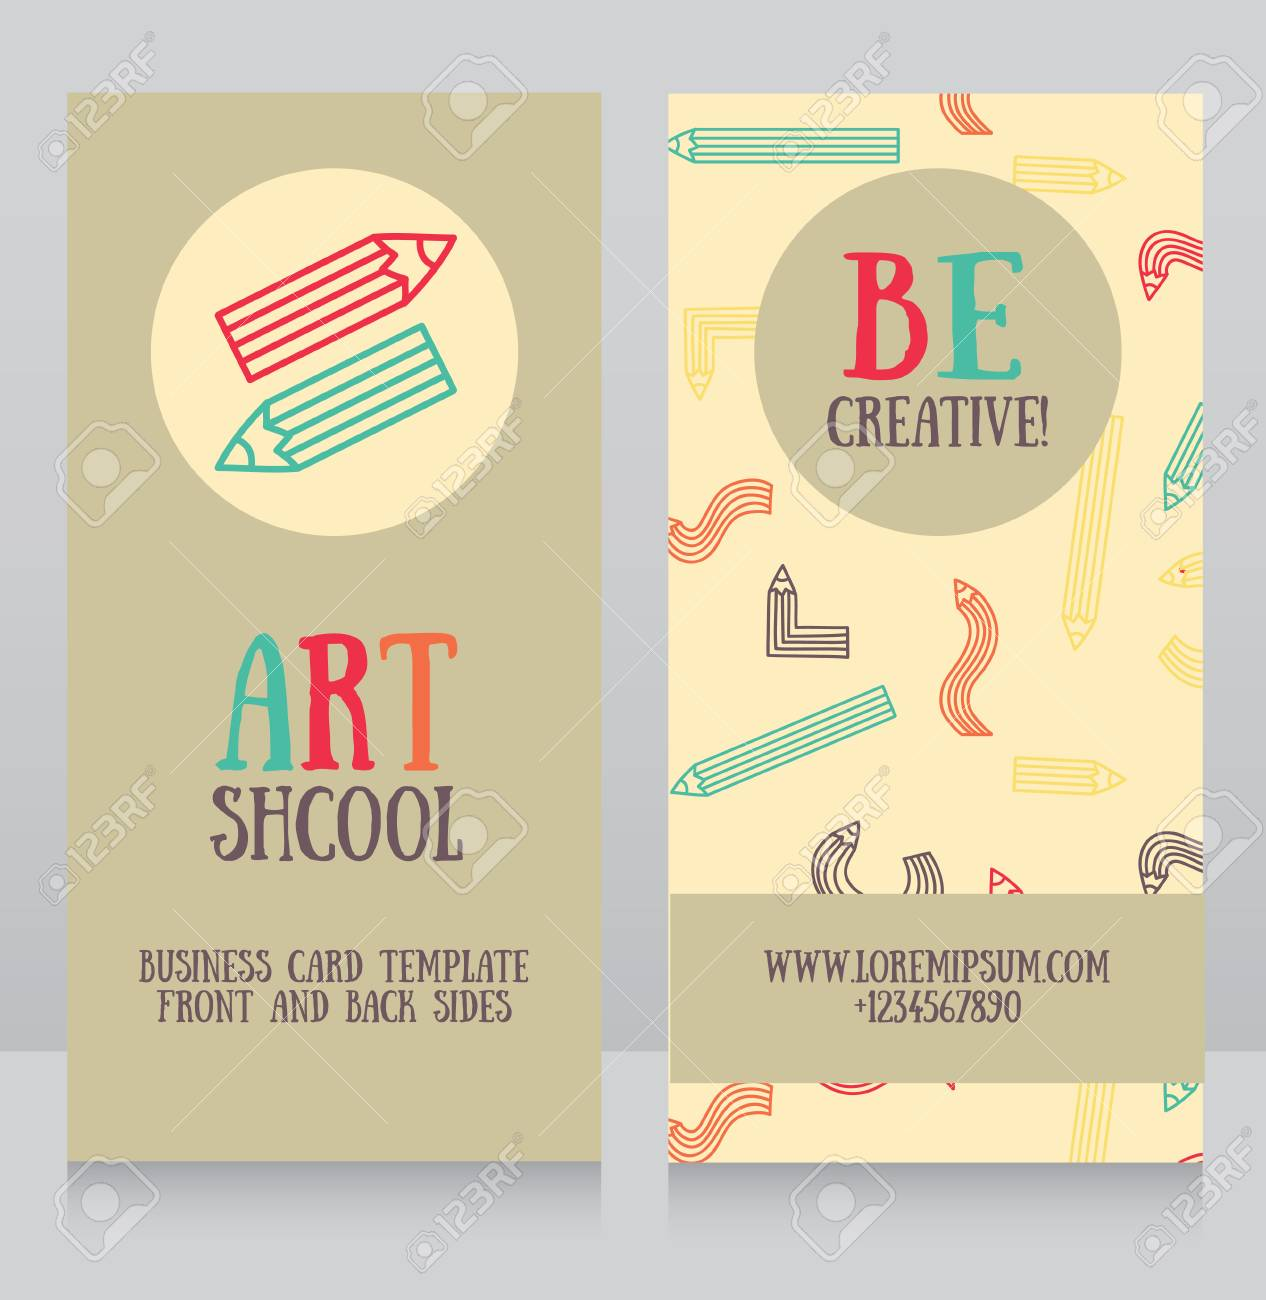 Business Cards Templates For Art School, Can Be Used For Art ...